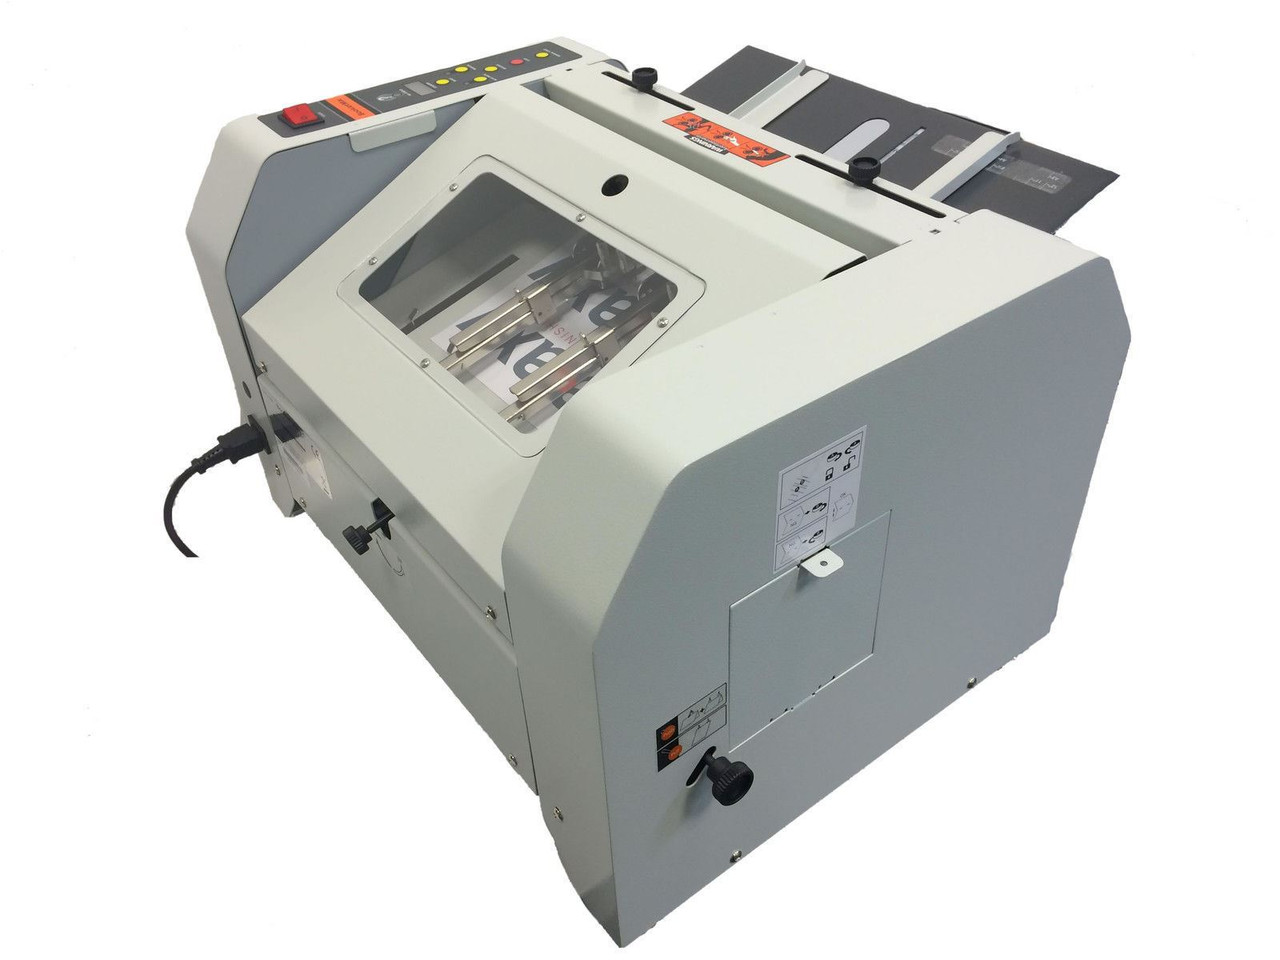 Galaxy VR-930 Automatic Staple Booklet Maker